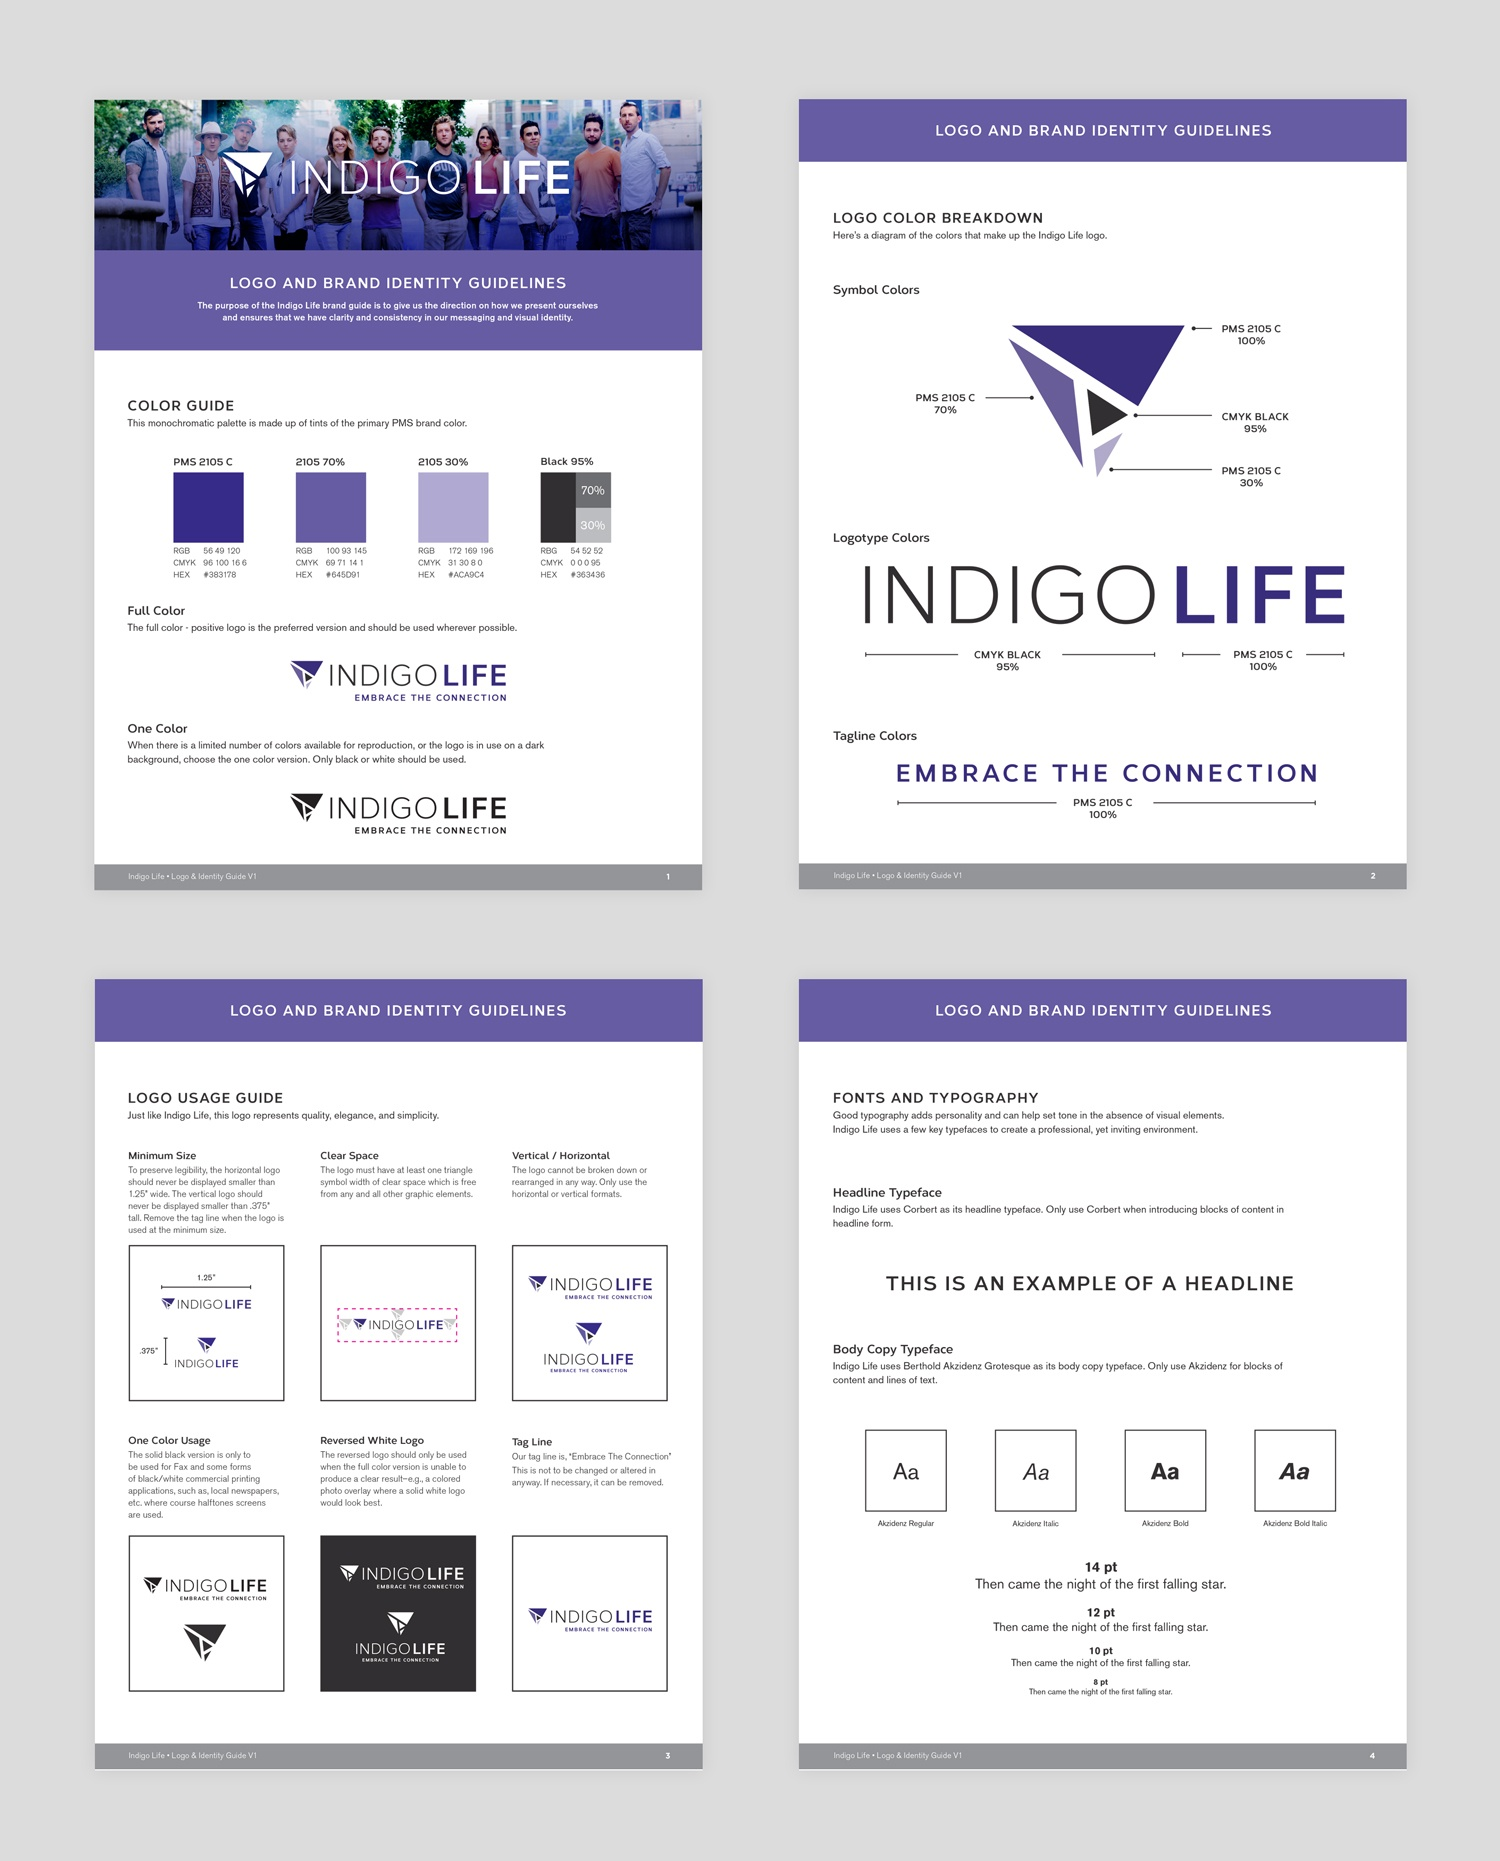 A image of the brand guide pages